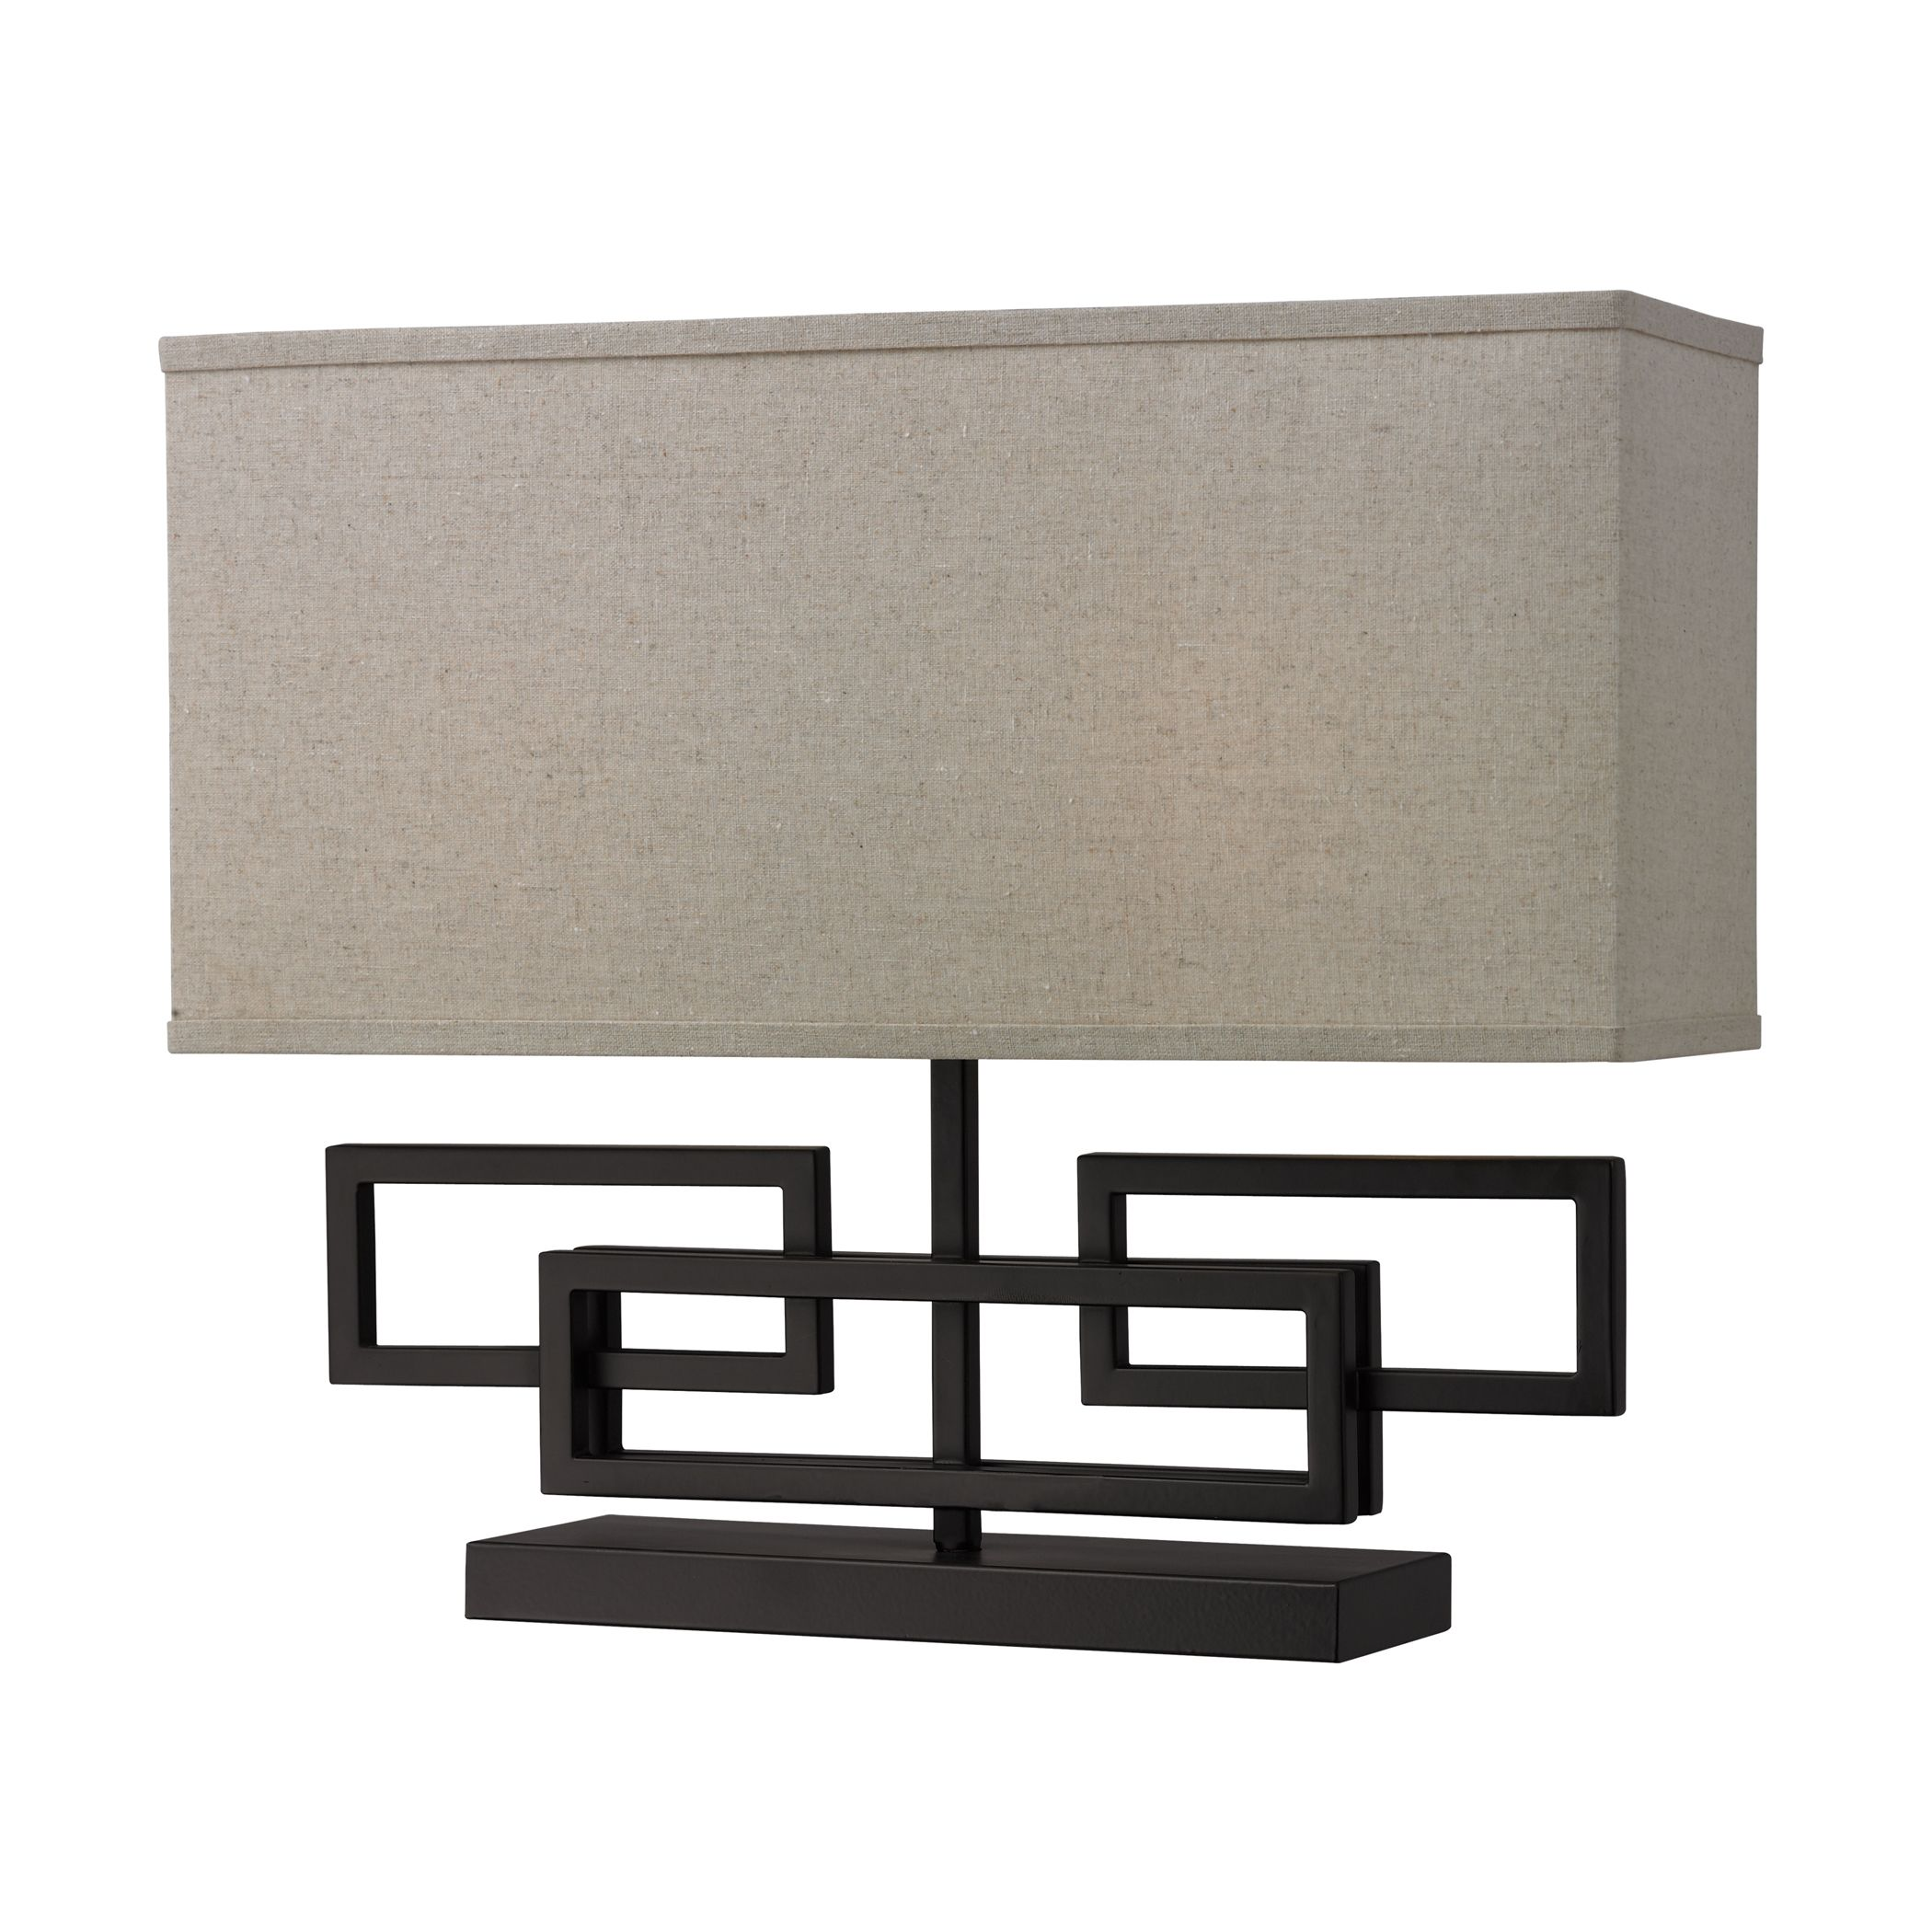 Stand out with this lamp